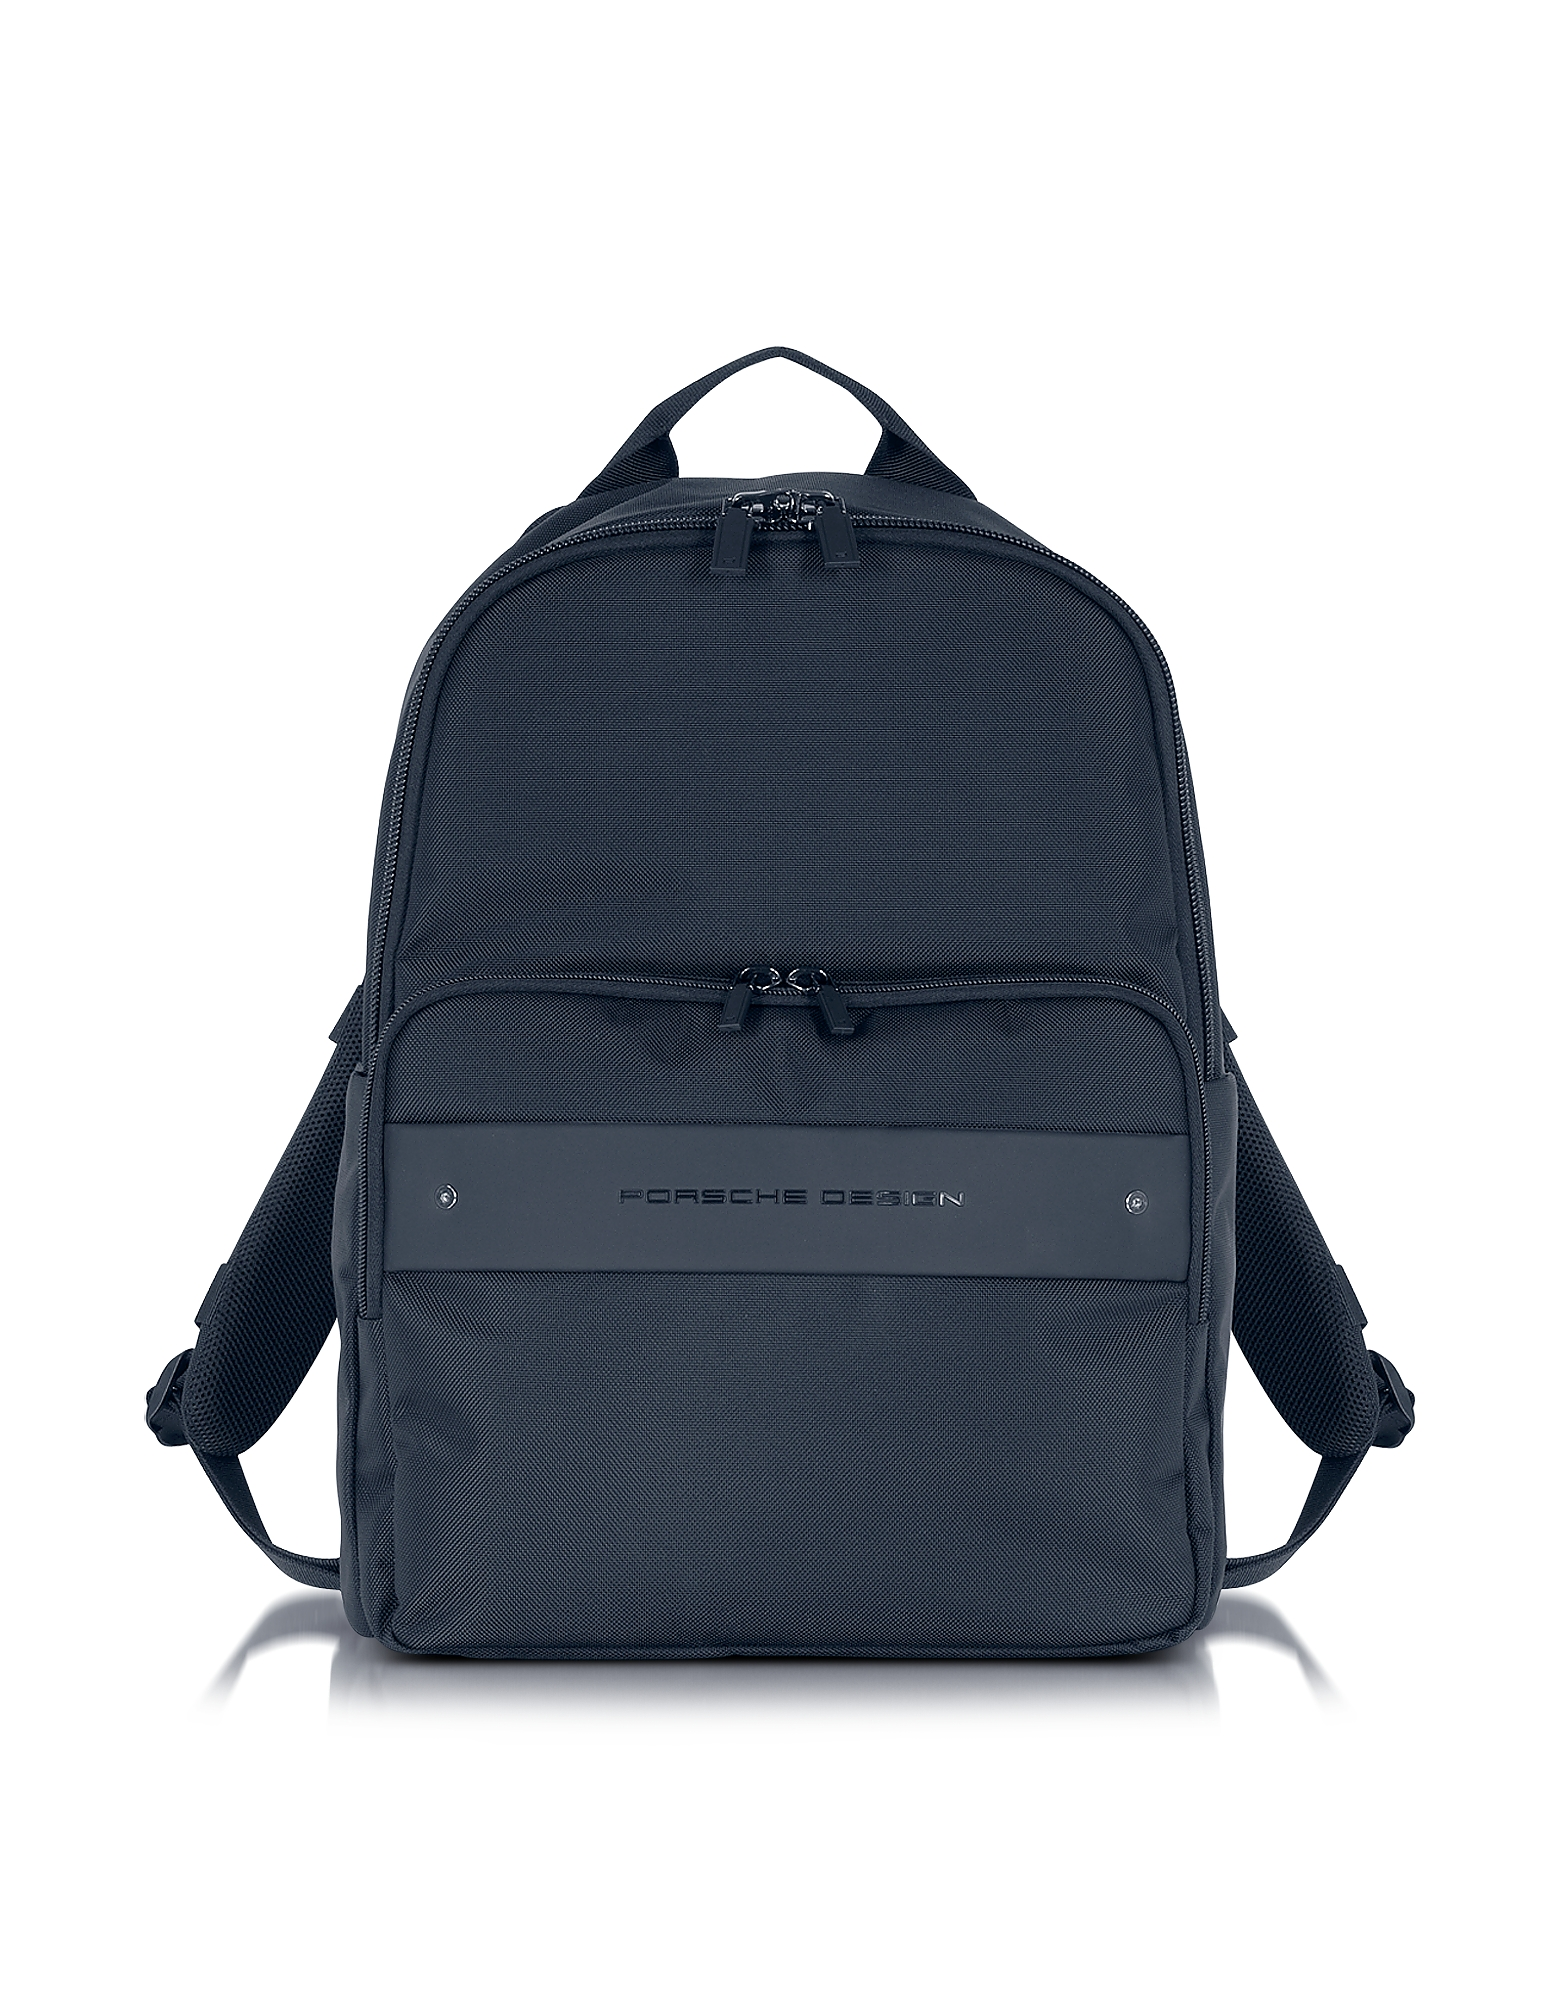 Porsche Design Backpacks, Cargon 2.5 Dark Blue Nylon Backpack